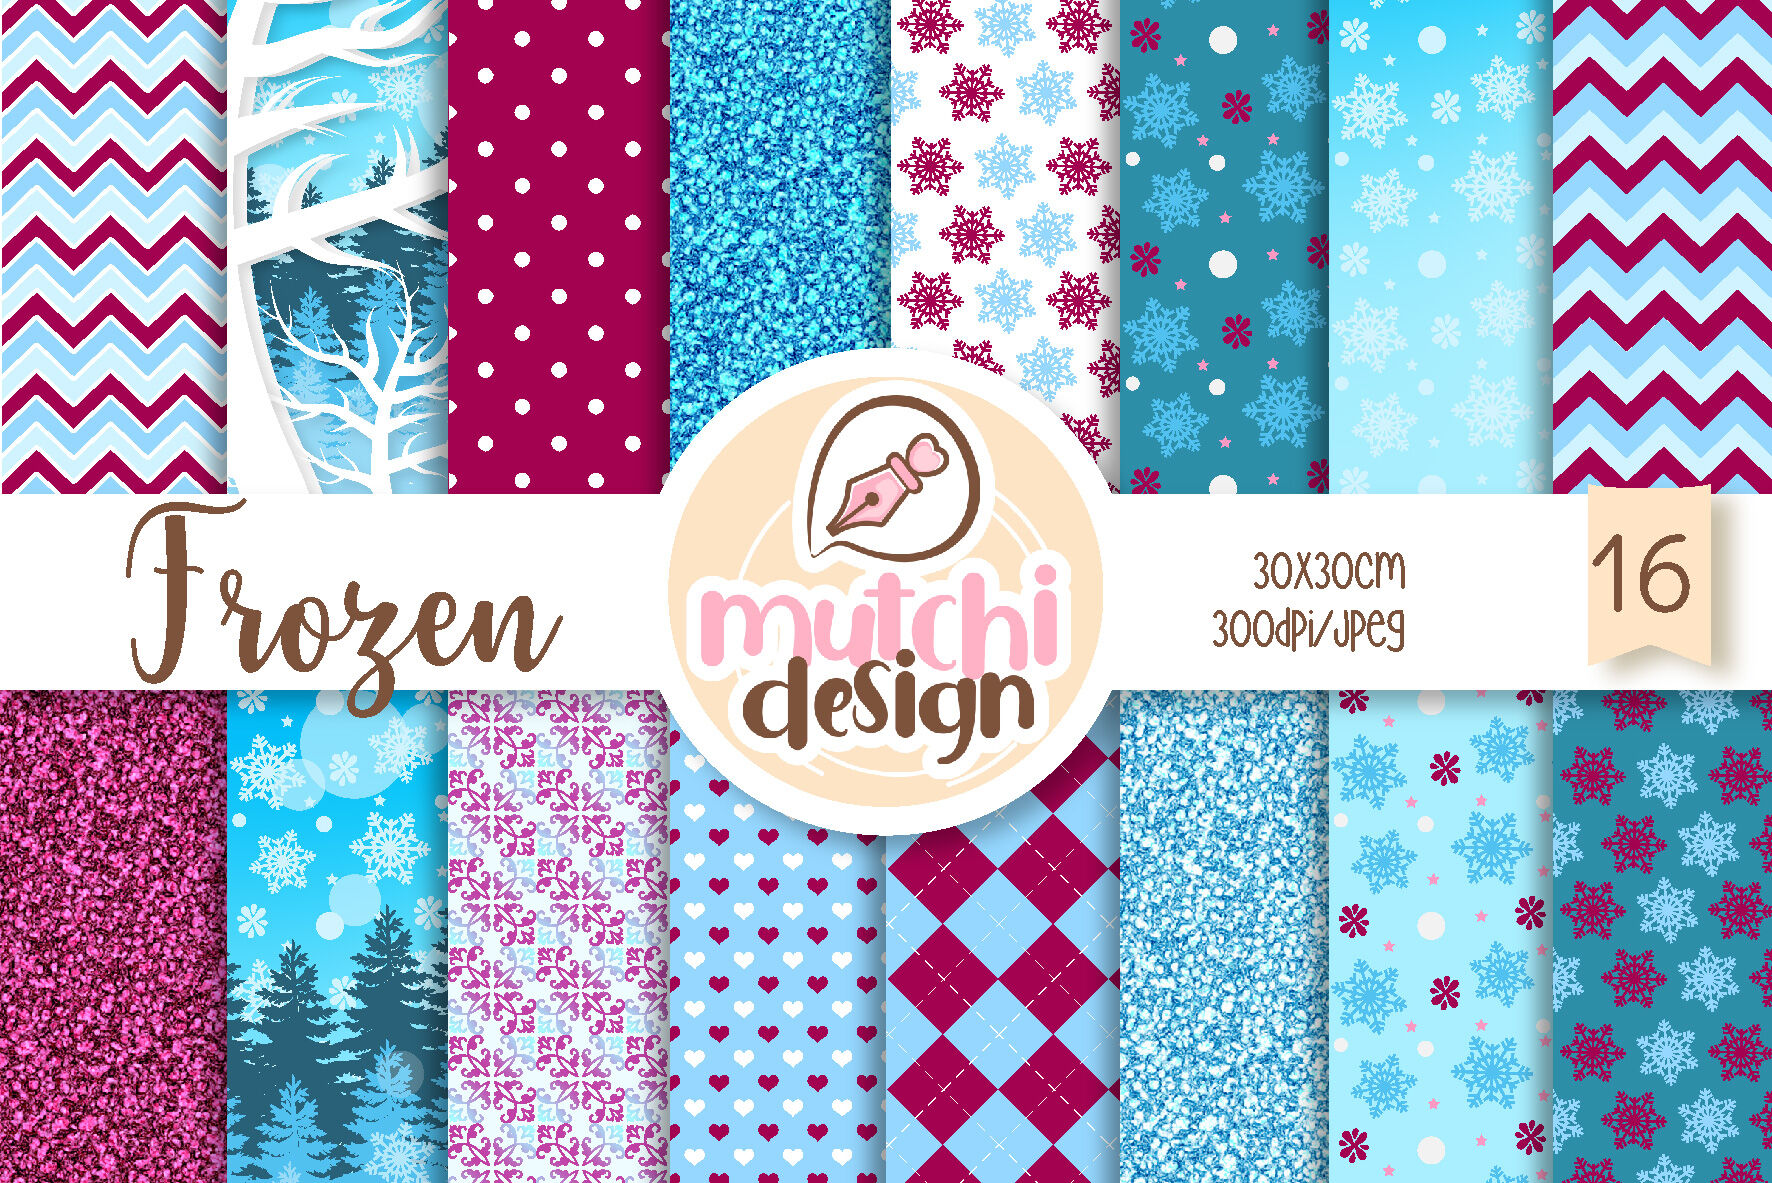 Frozen Digital Papers By Mutchidesign Thehungryjpeg Com